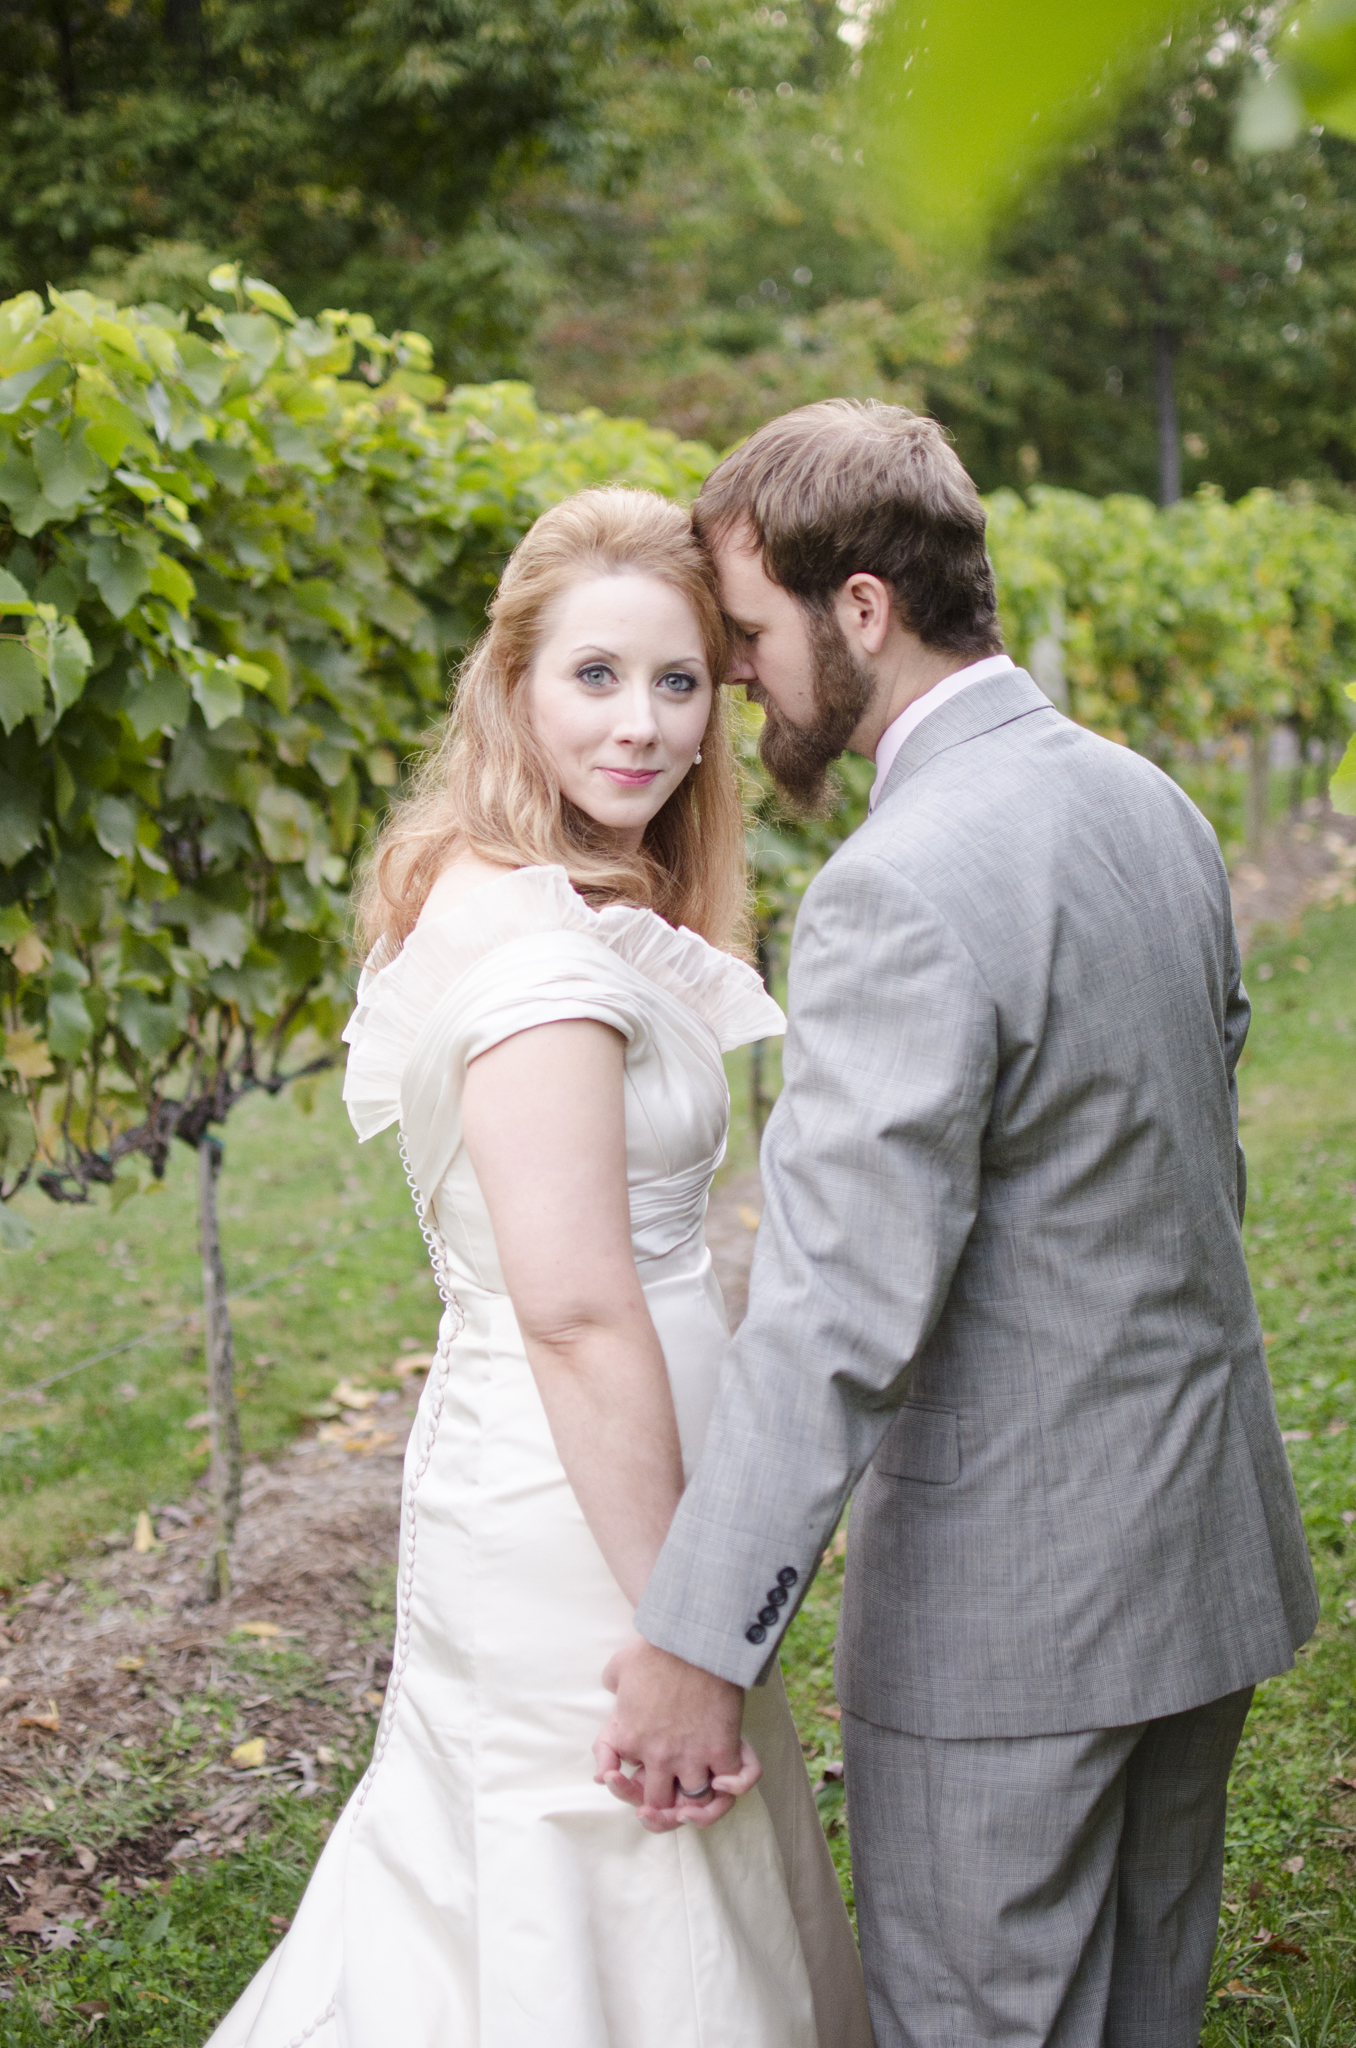 Veritas Vineyard Charlotteville, Virginia wedding photographer